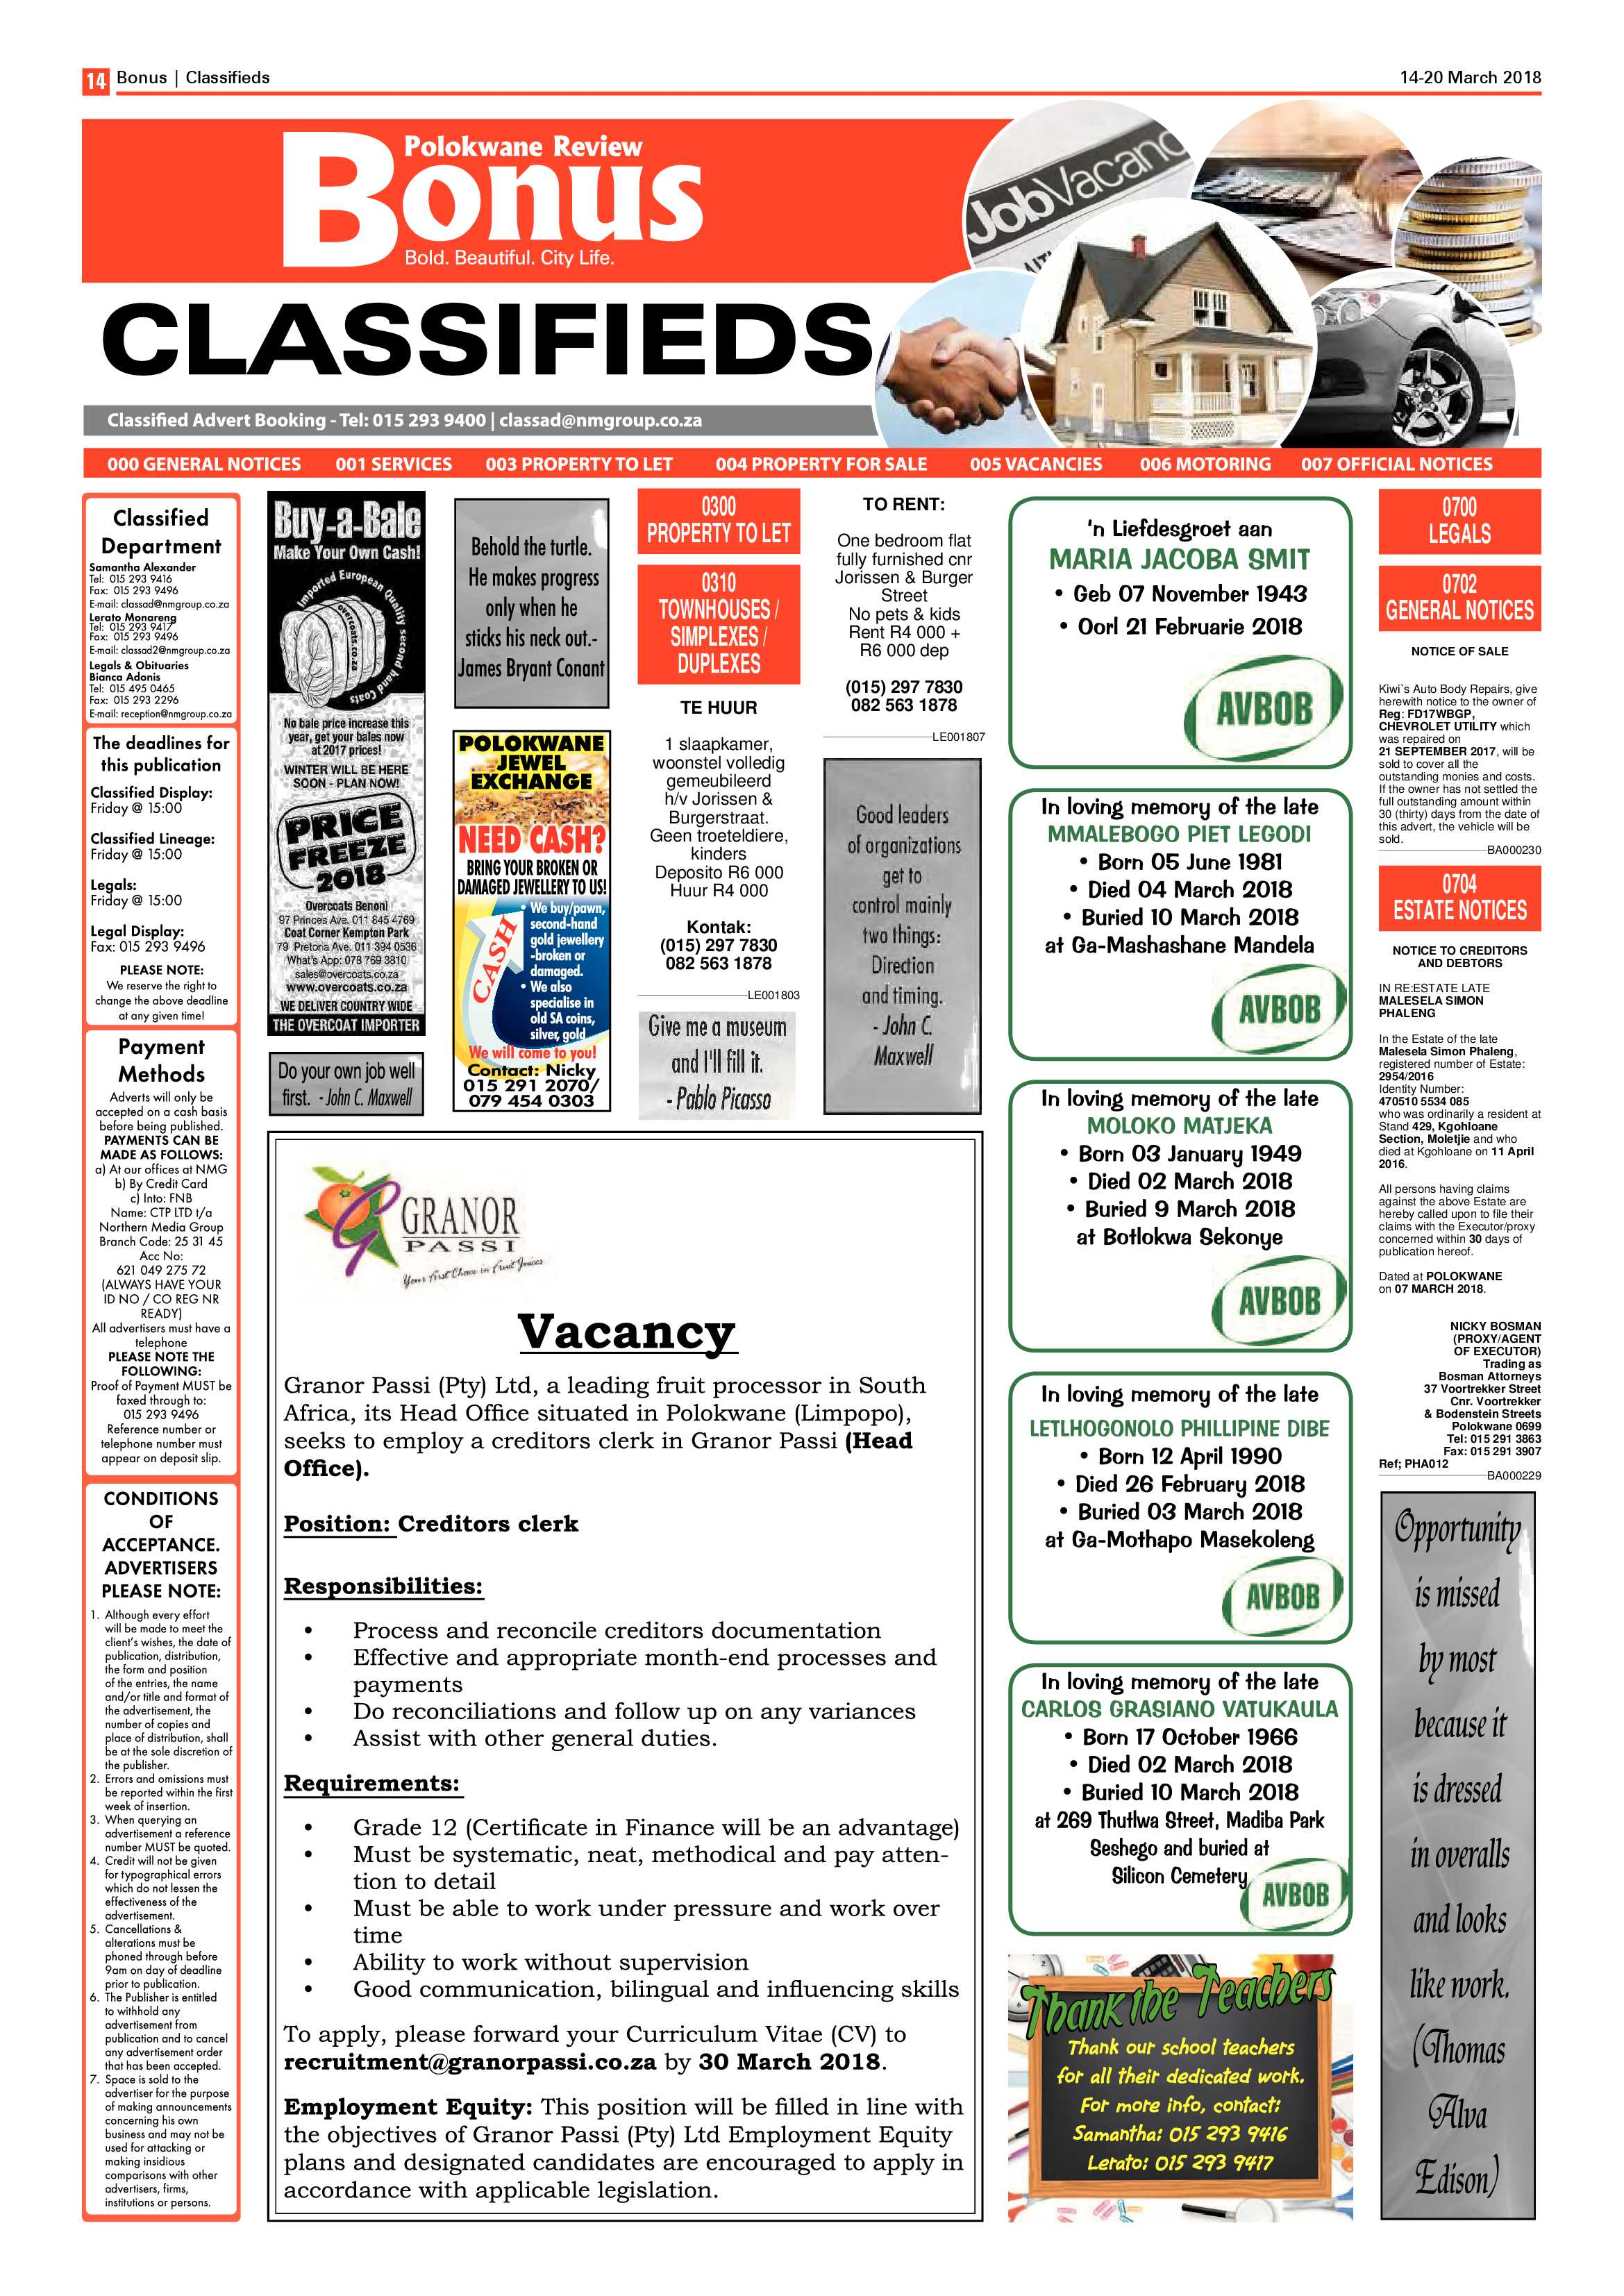 review-bonus-14-march-2018-epapers-page-14